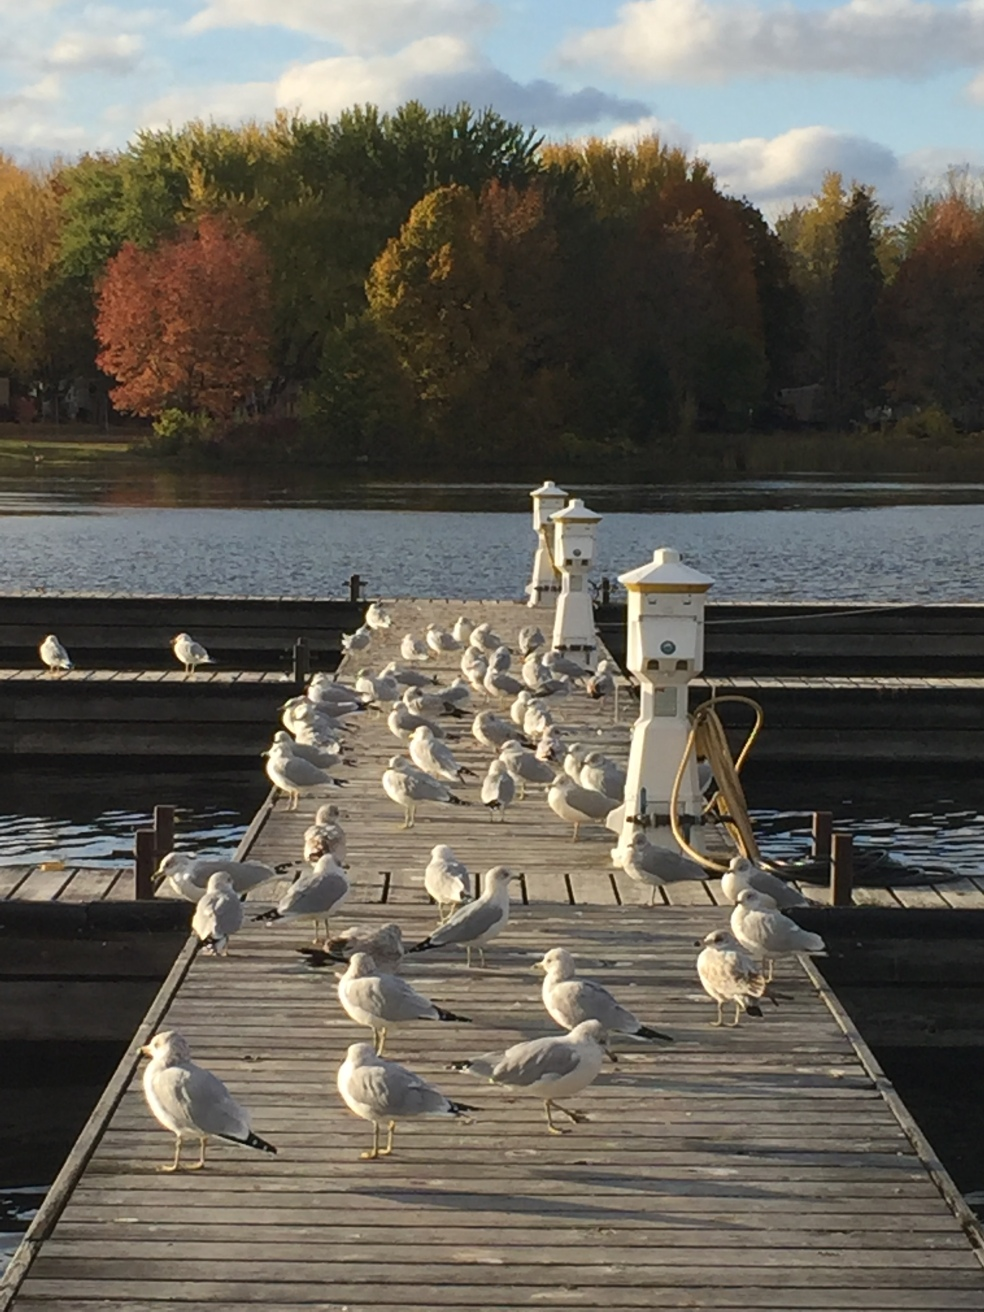 seagulls on a dock in the fall